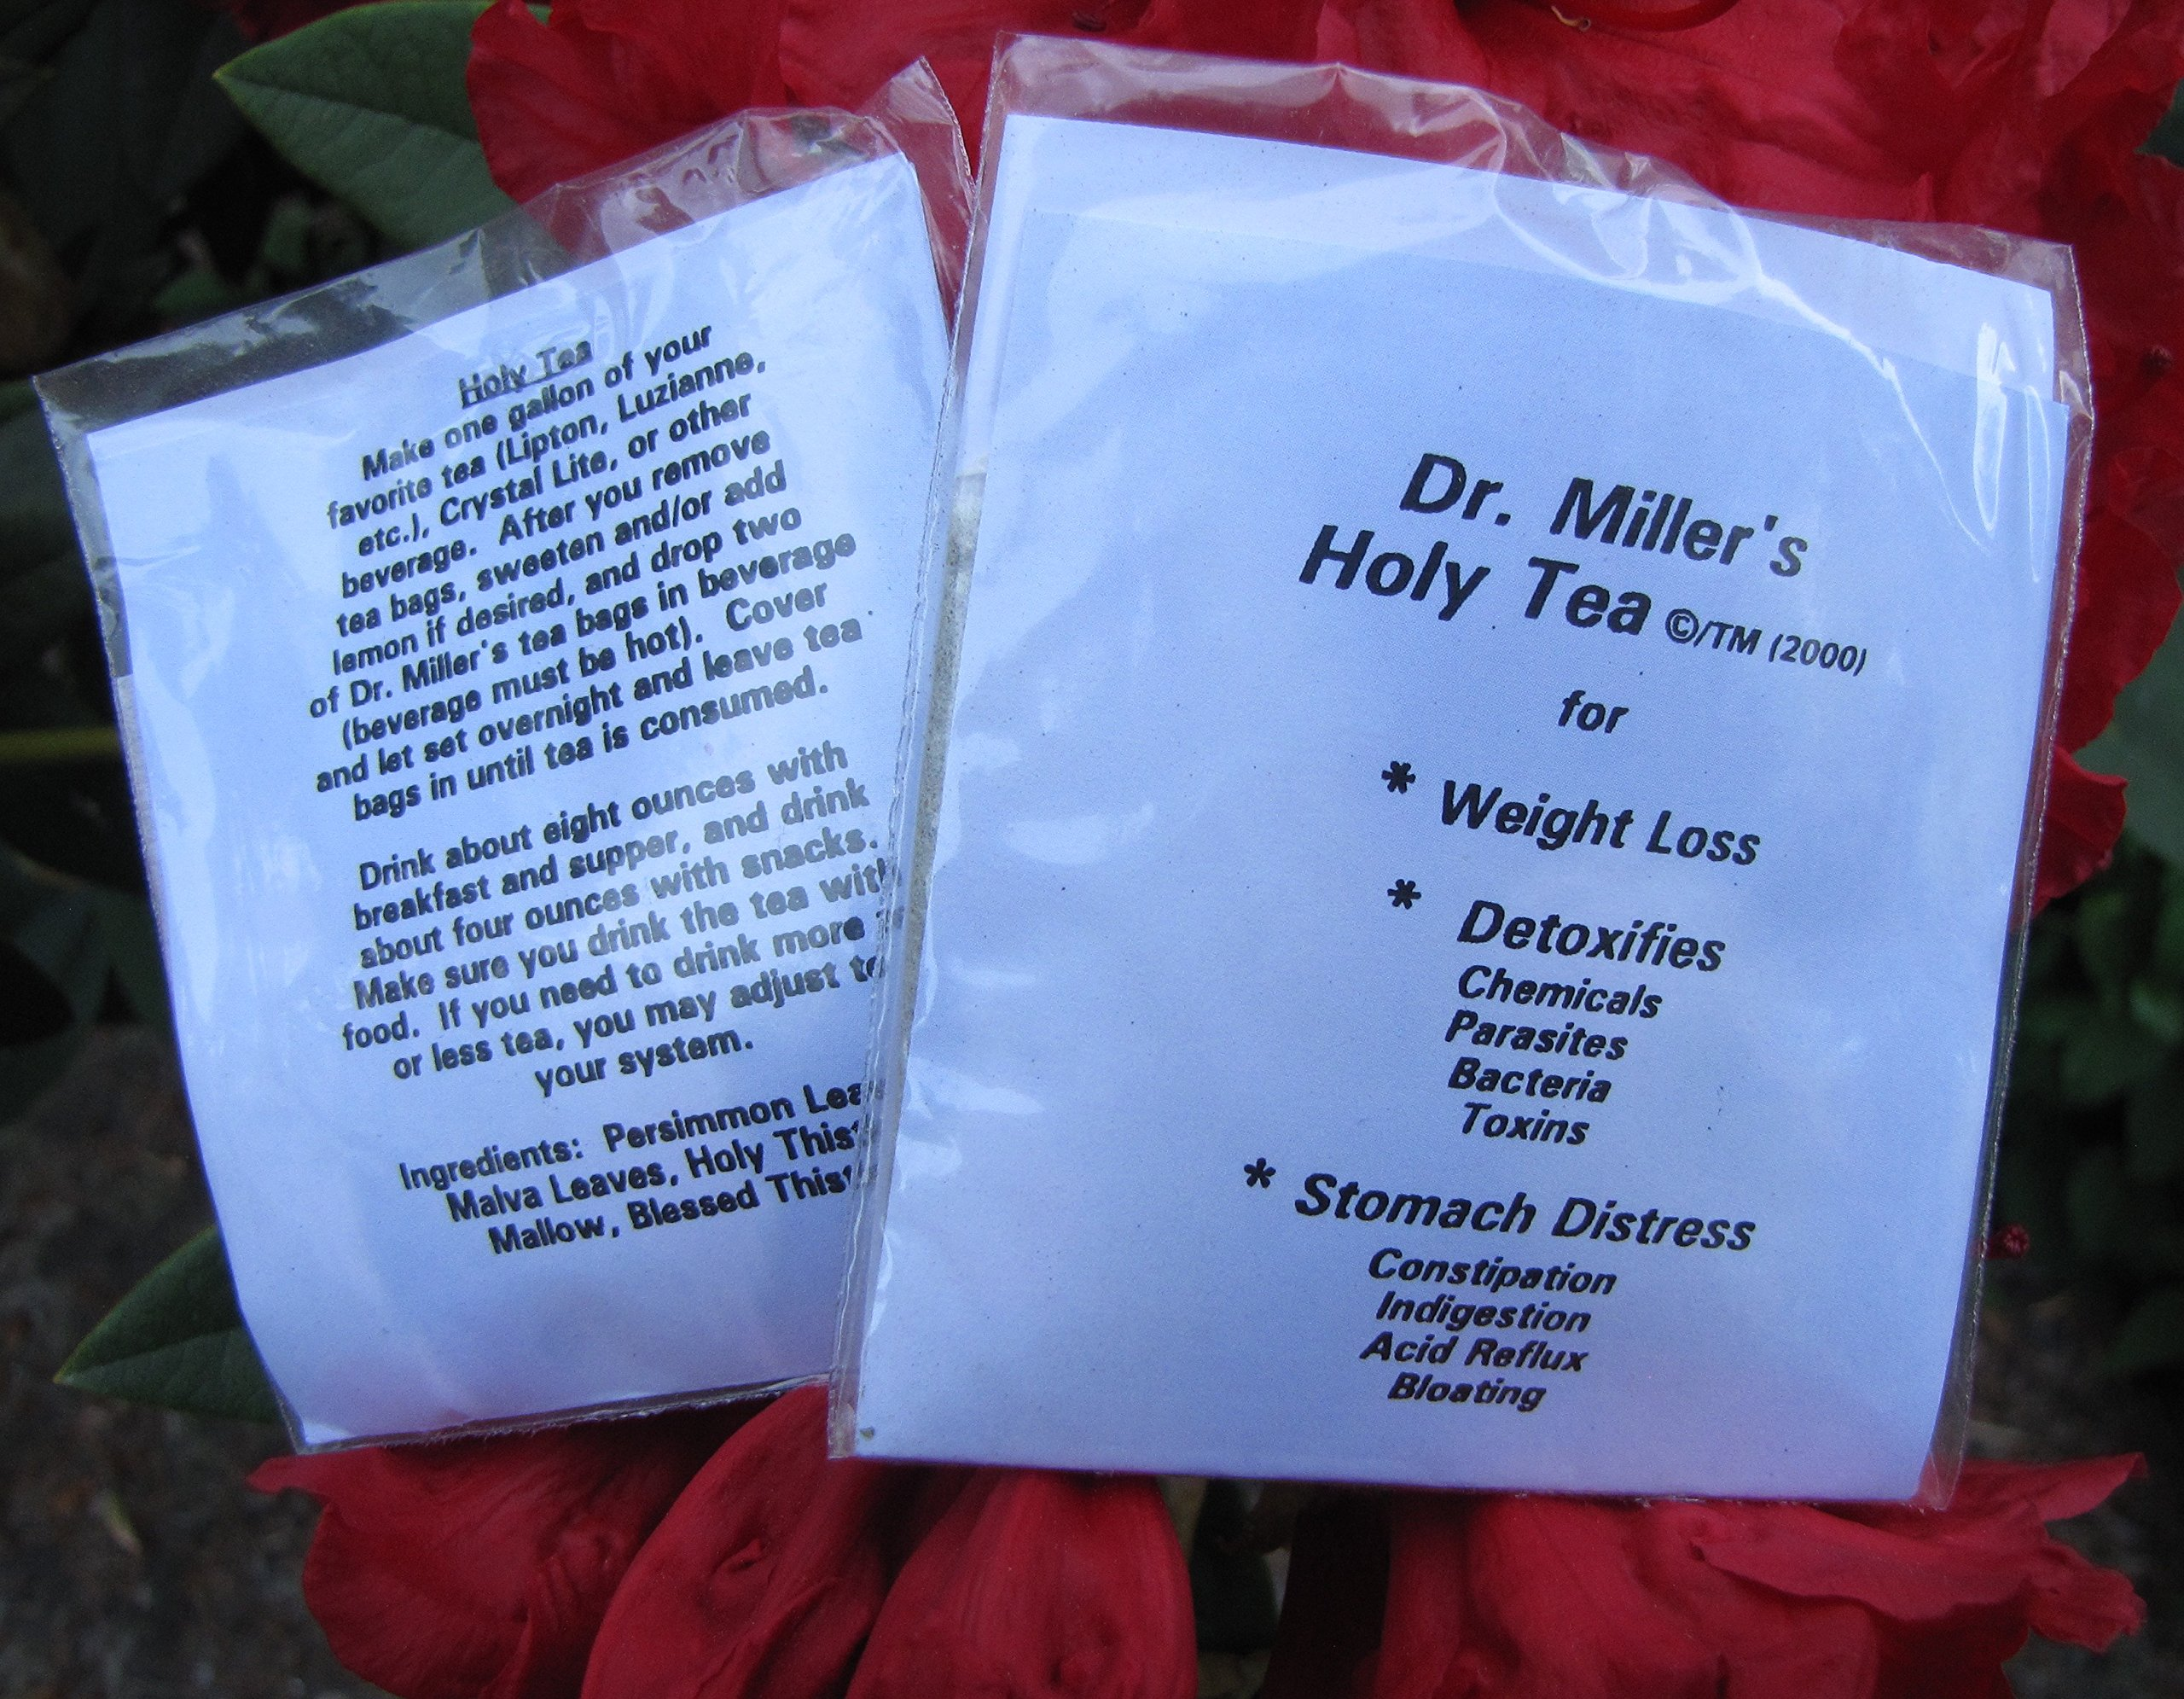 Dr. Miller's Holy Tea 48 Tea Bags 6 Mo supply, Guaranteed BEST PRICE PRICE Dr. Miller's #1 seller of Dr. Miller's Original Formula Holy Tea 48 Packets. 6 Month Supply